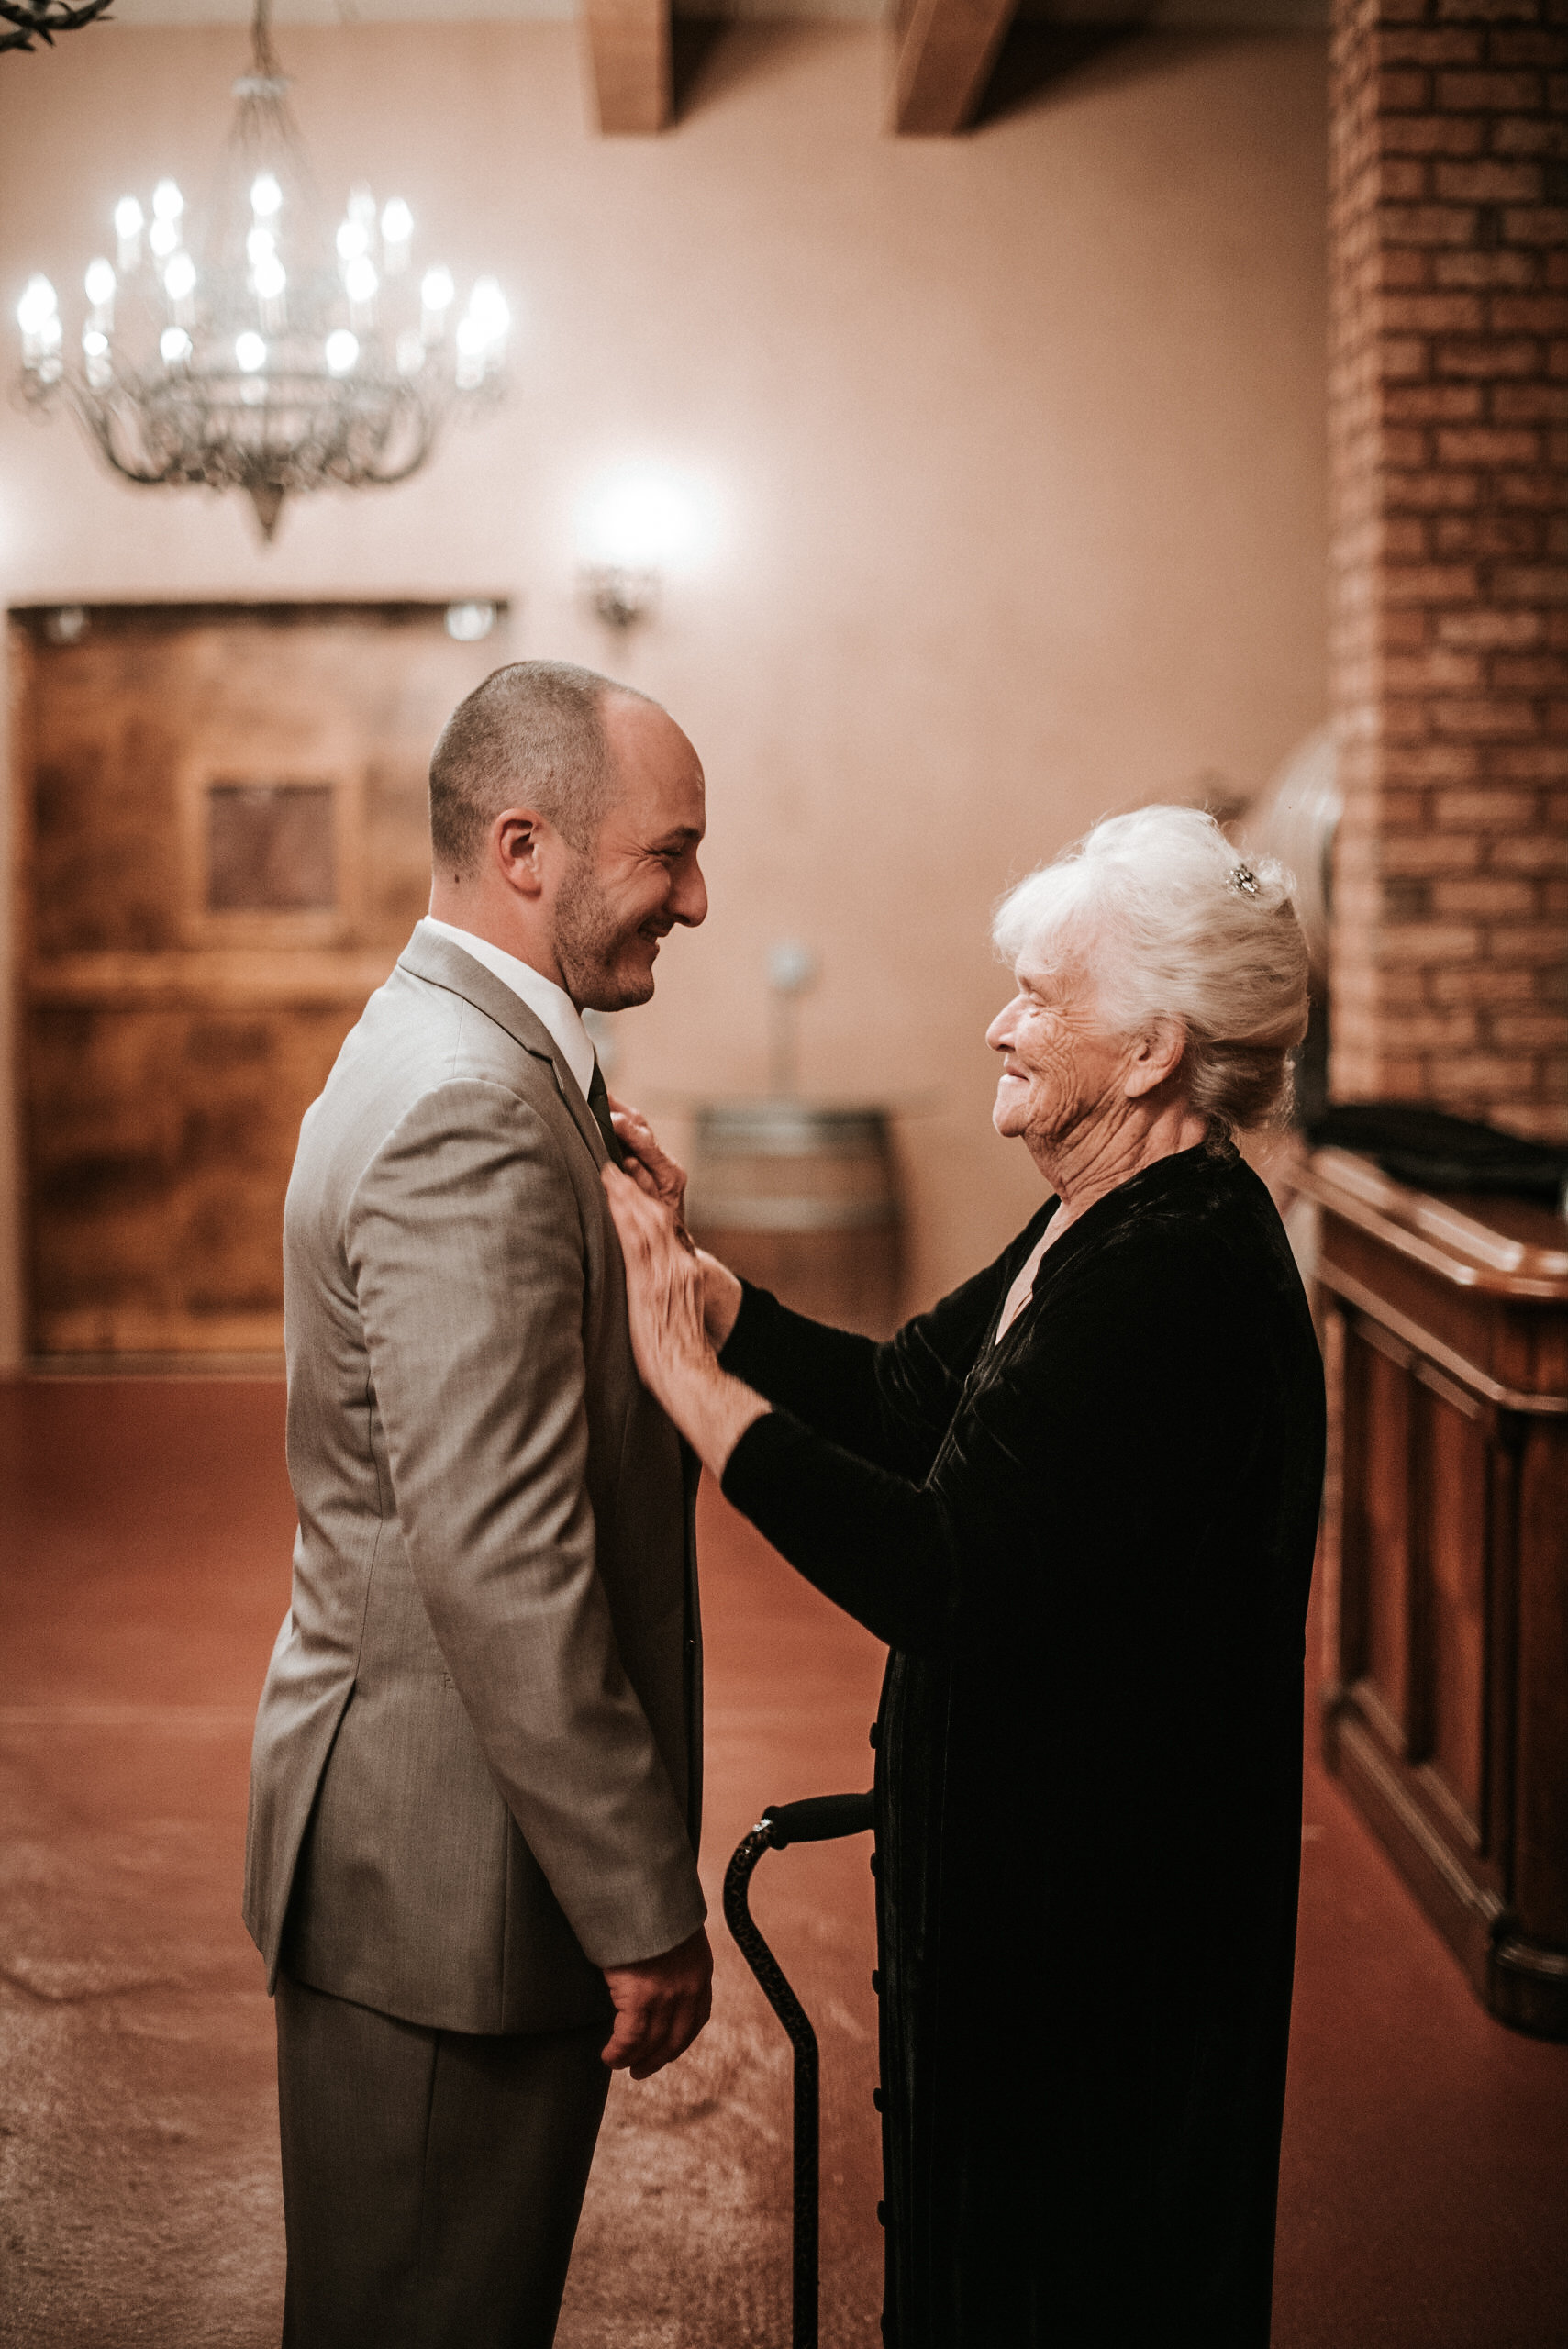 Grandmother straightening groom's tie